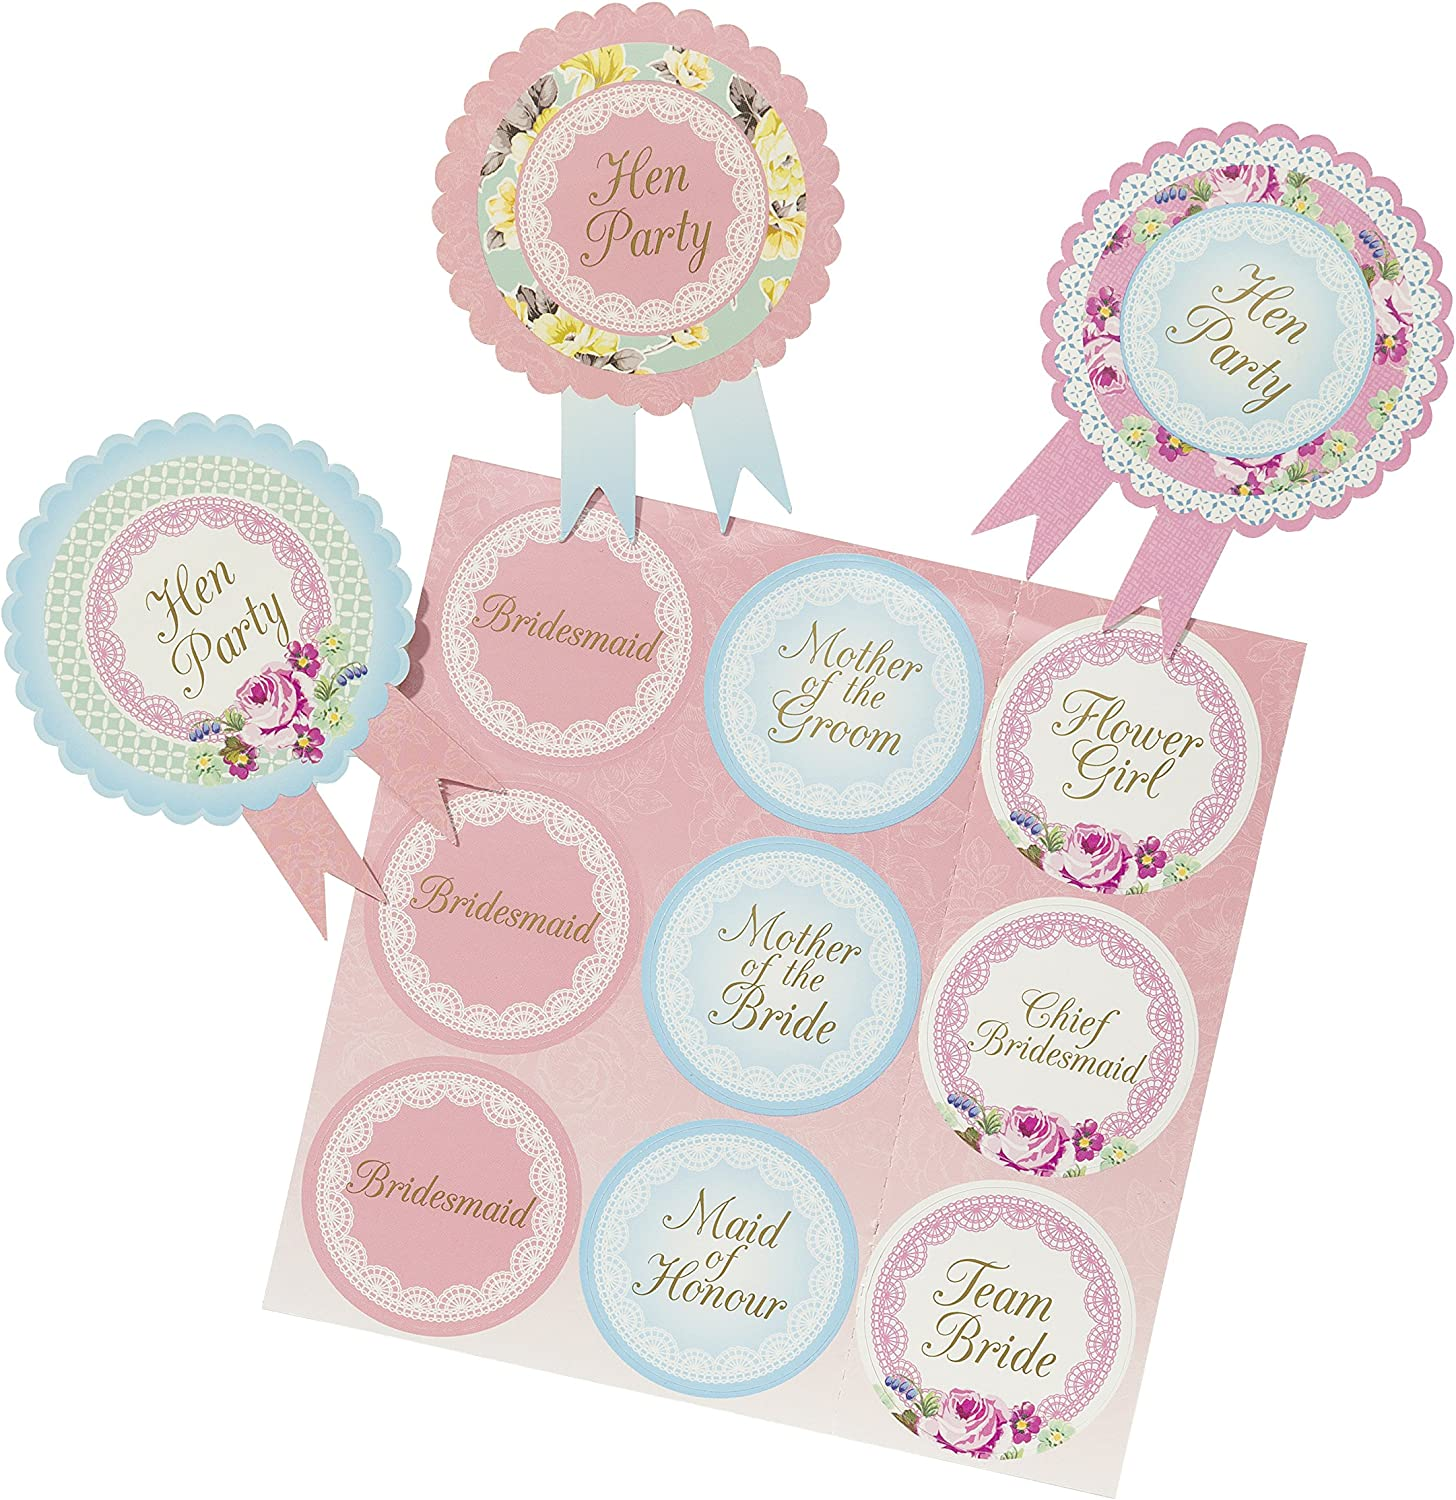 Classy Hen Night//Party BADGES Shabby Chic//Vintage Style Floral Guest Rosettes